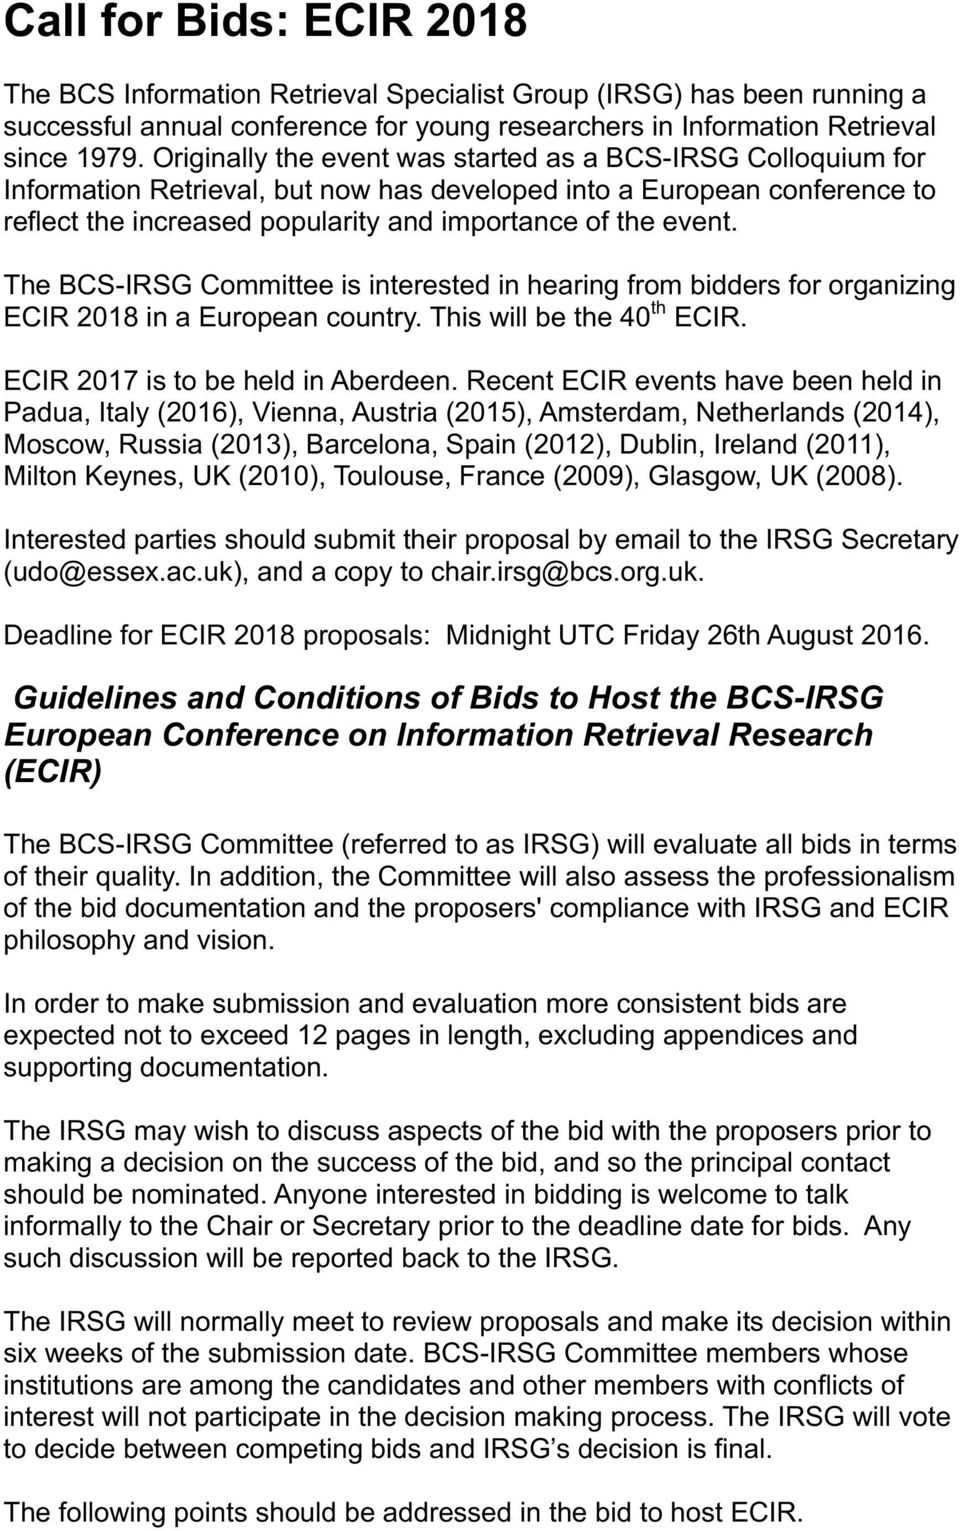 The BCS-IRSG Committee is interested in hearing from bidders for organizing ECIR 2018 in a European country. This will be the 40 th ECIR. ECIR 2017 is to be held in Aberdeen.